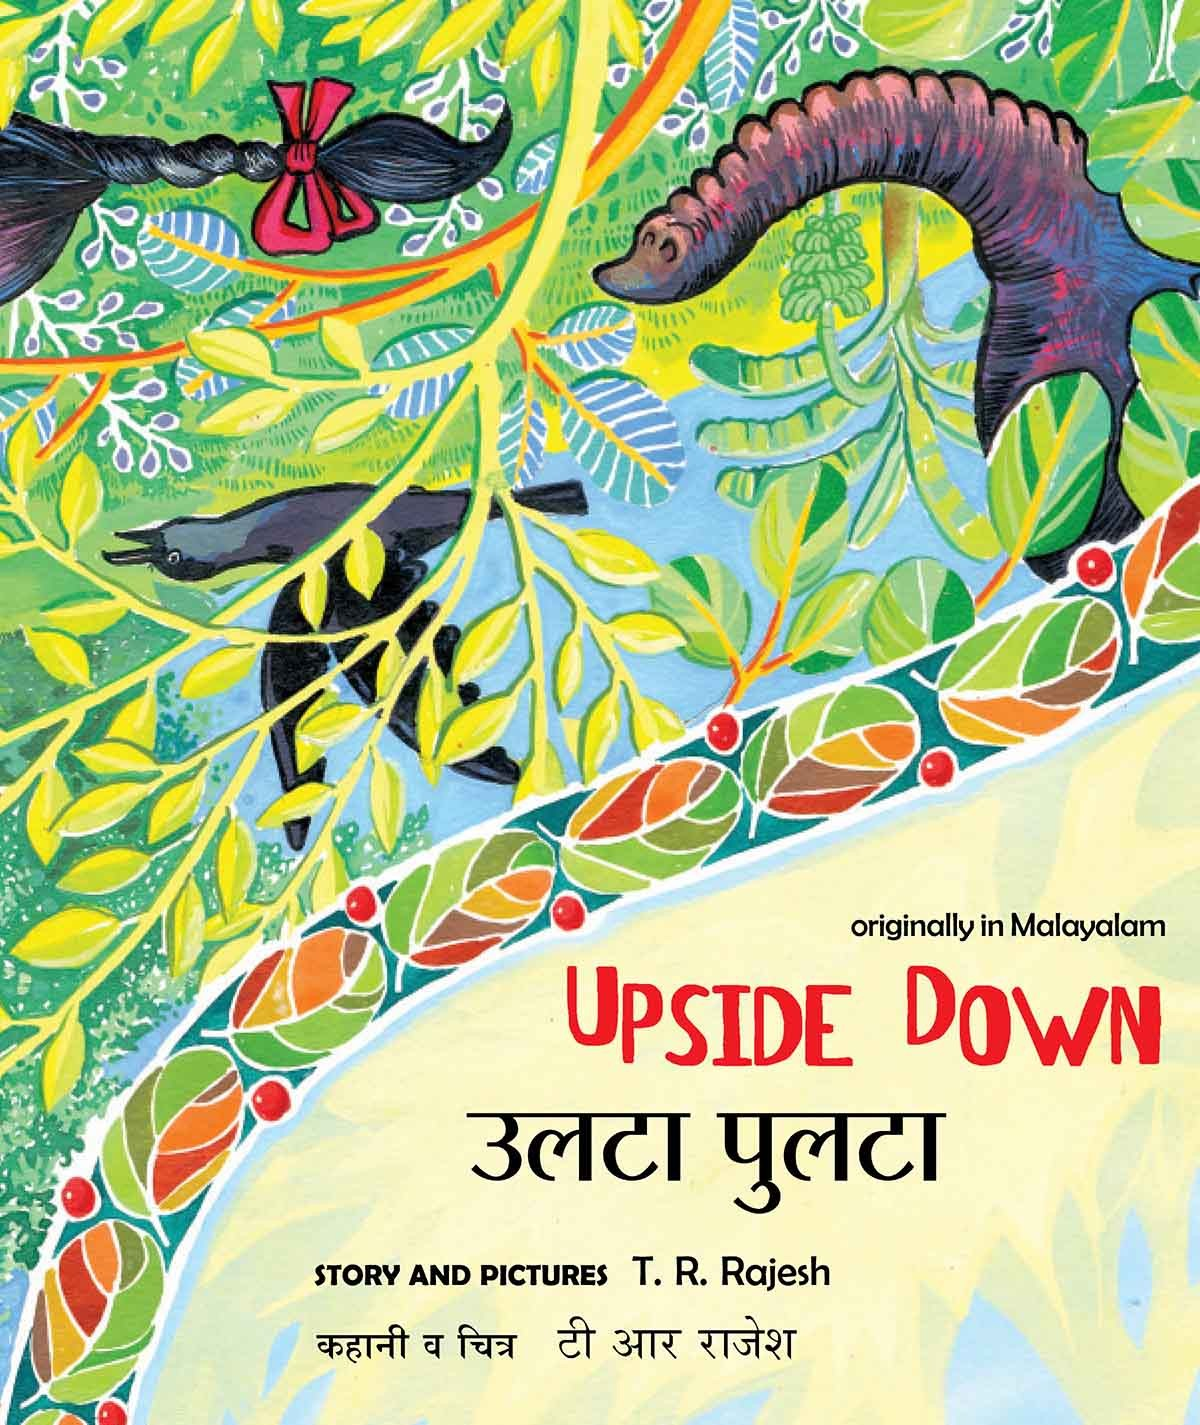 Upside Down/Ulta Pulta (English-Hindi)